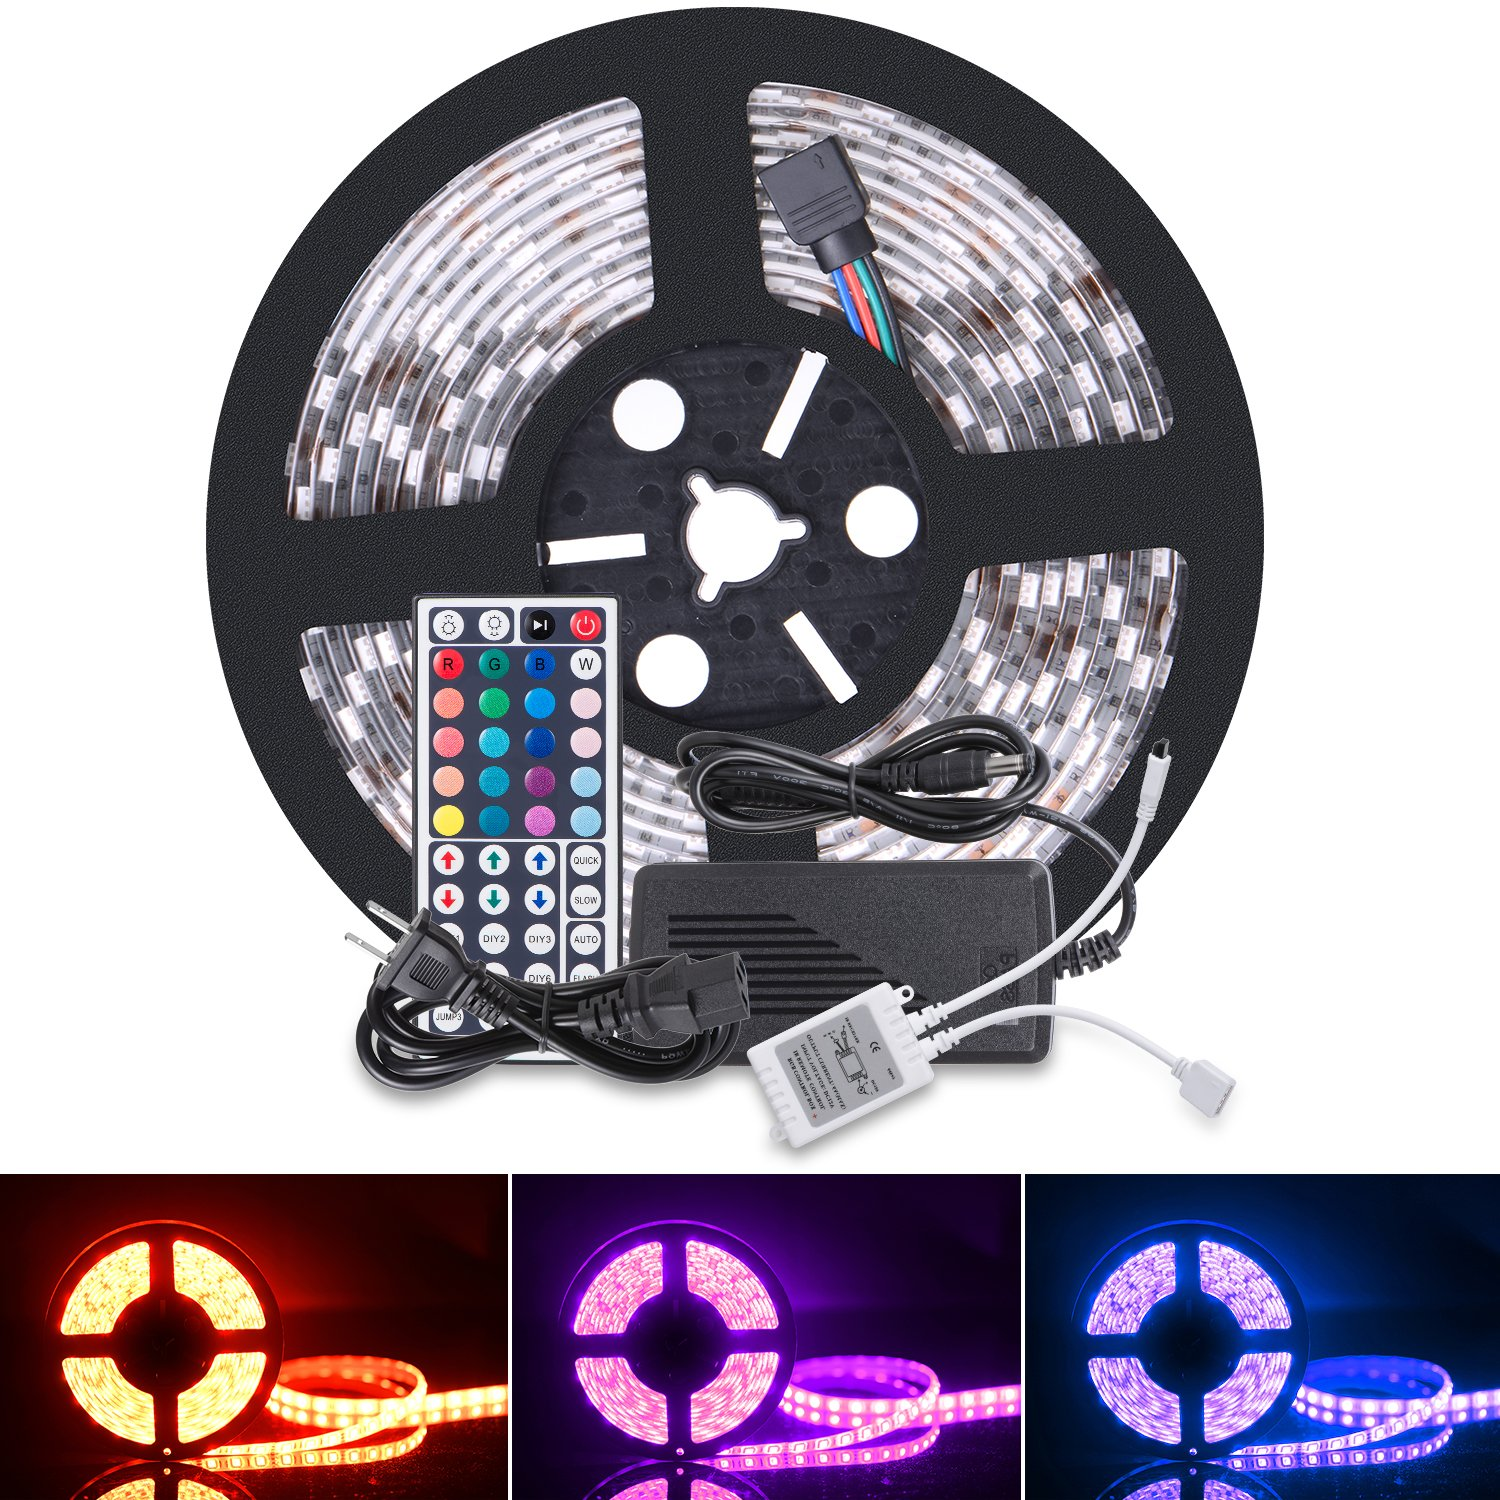 Led Rope Lights With Remote: Free Shipping Boomile Led Strip Lights, Waterproof SMD